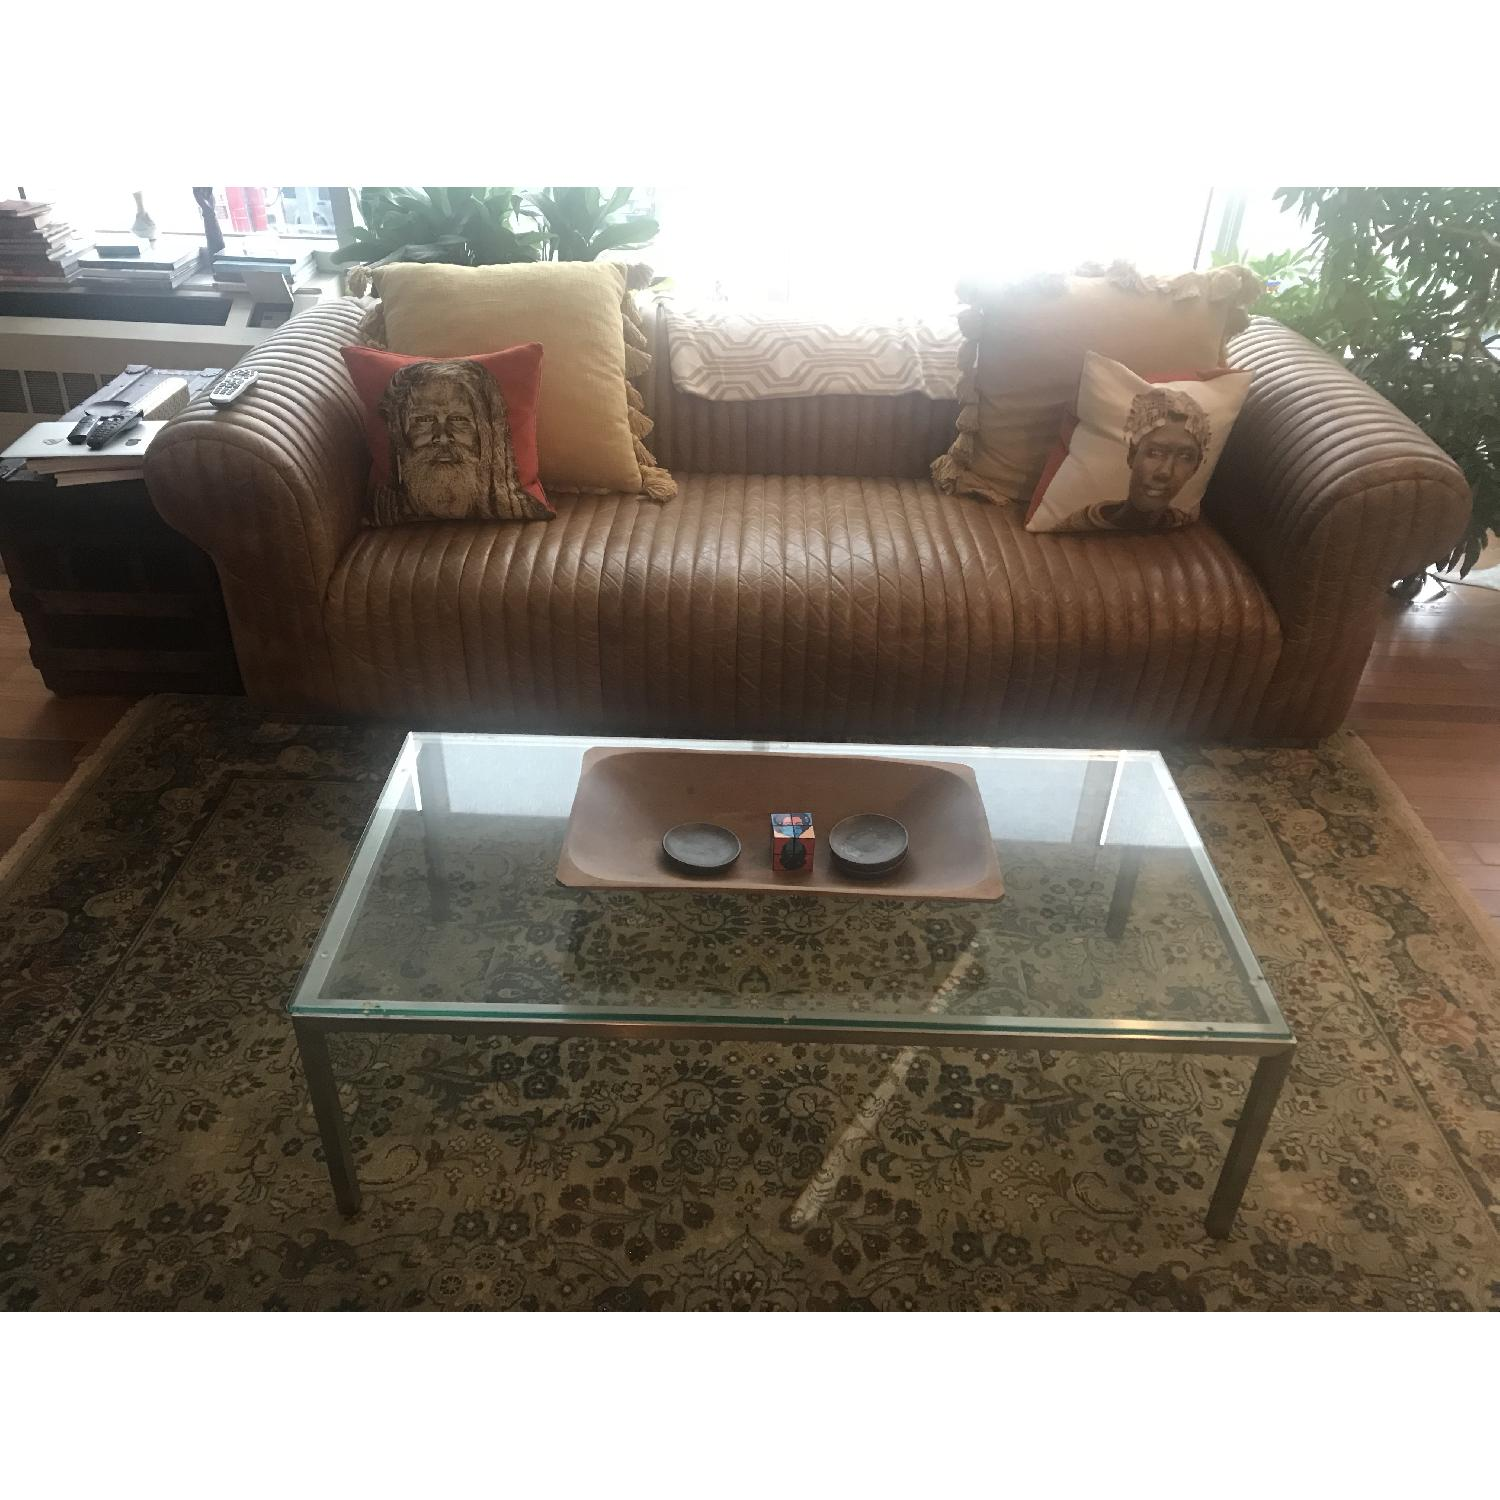 Room & Board Glass Top Coffee Table w/ Stainless Steel Legs - image-4